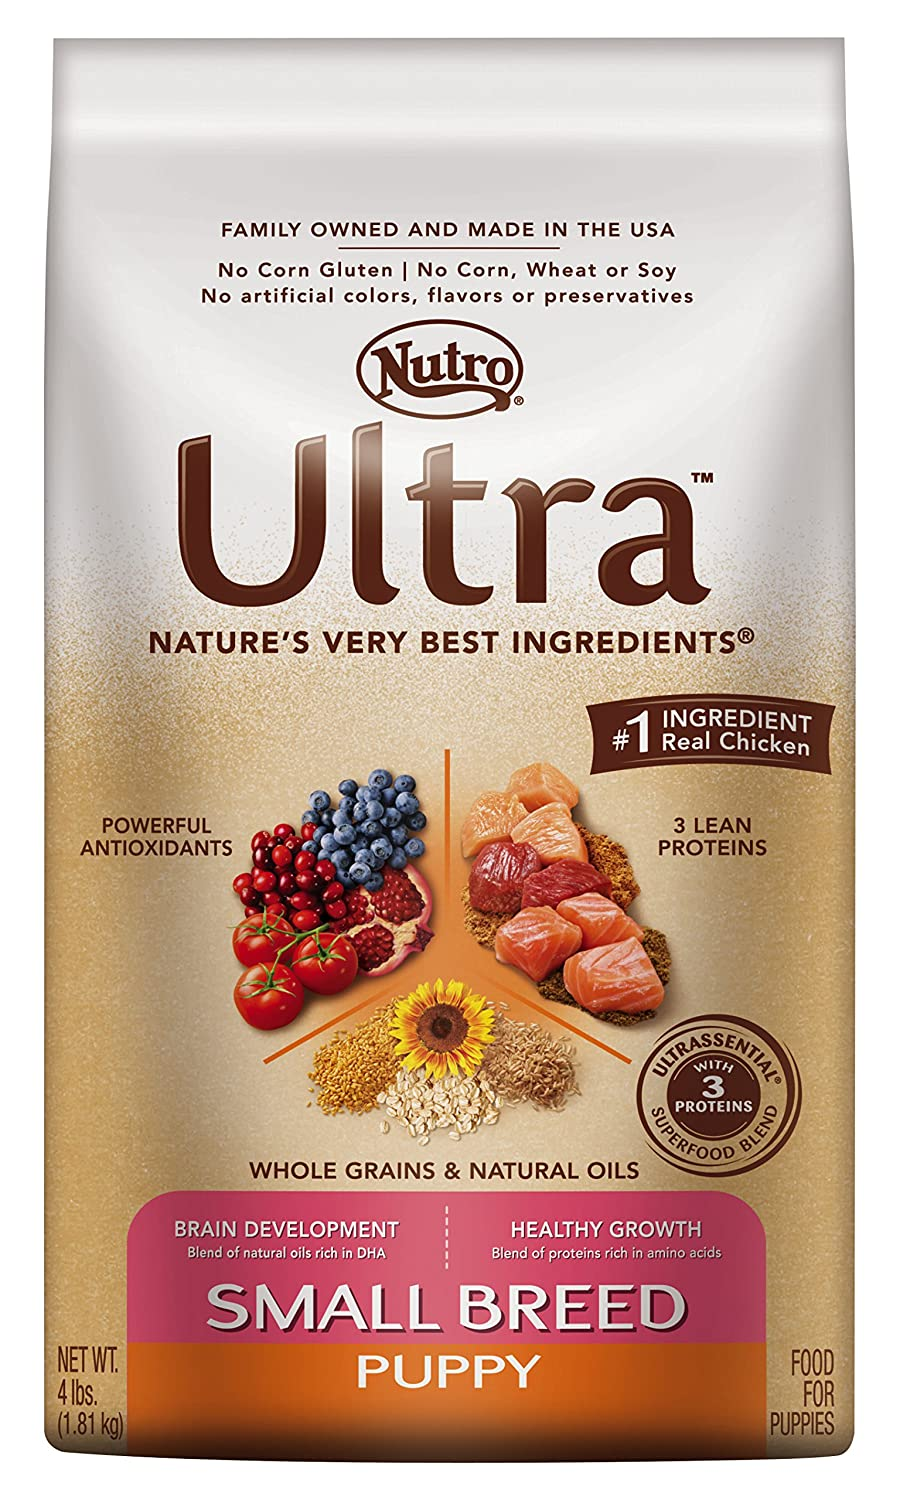 NUTRO ULTRA Puppy Dry Dog Food